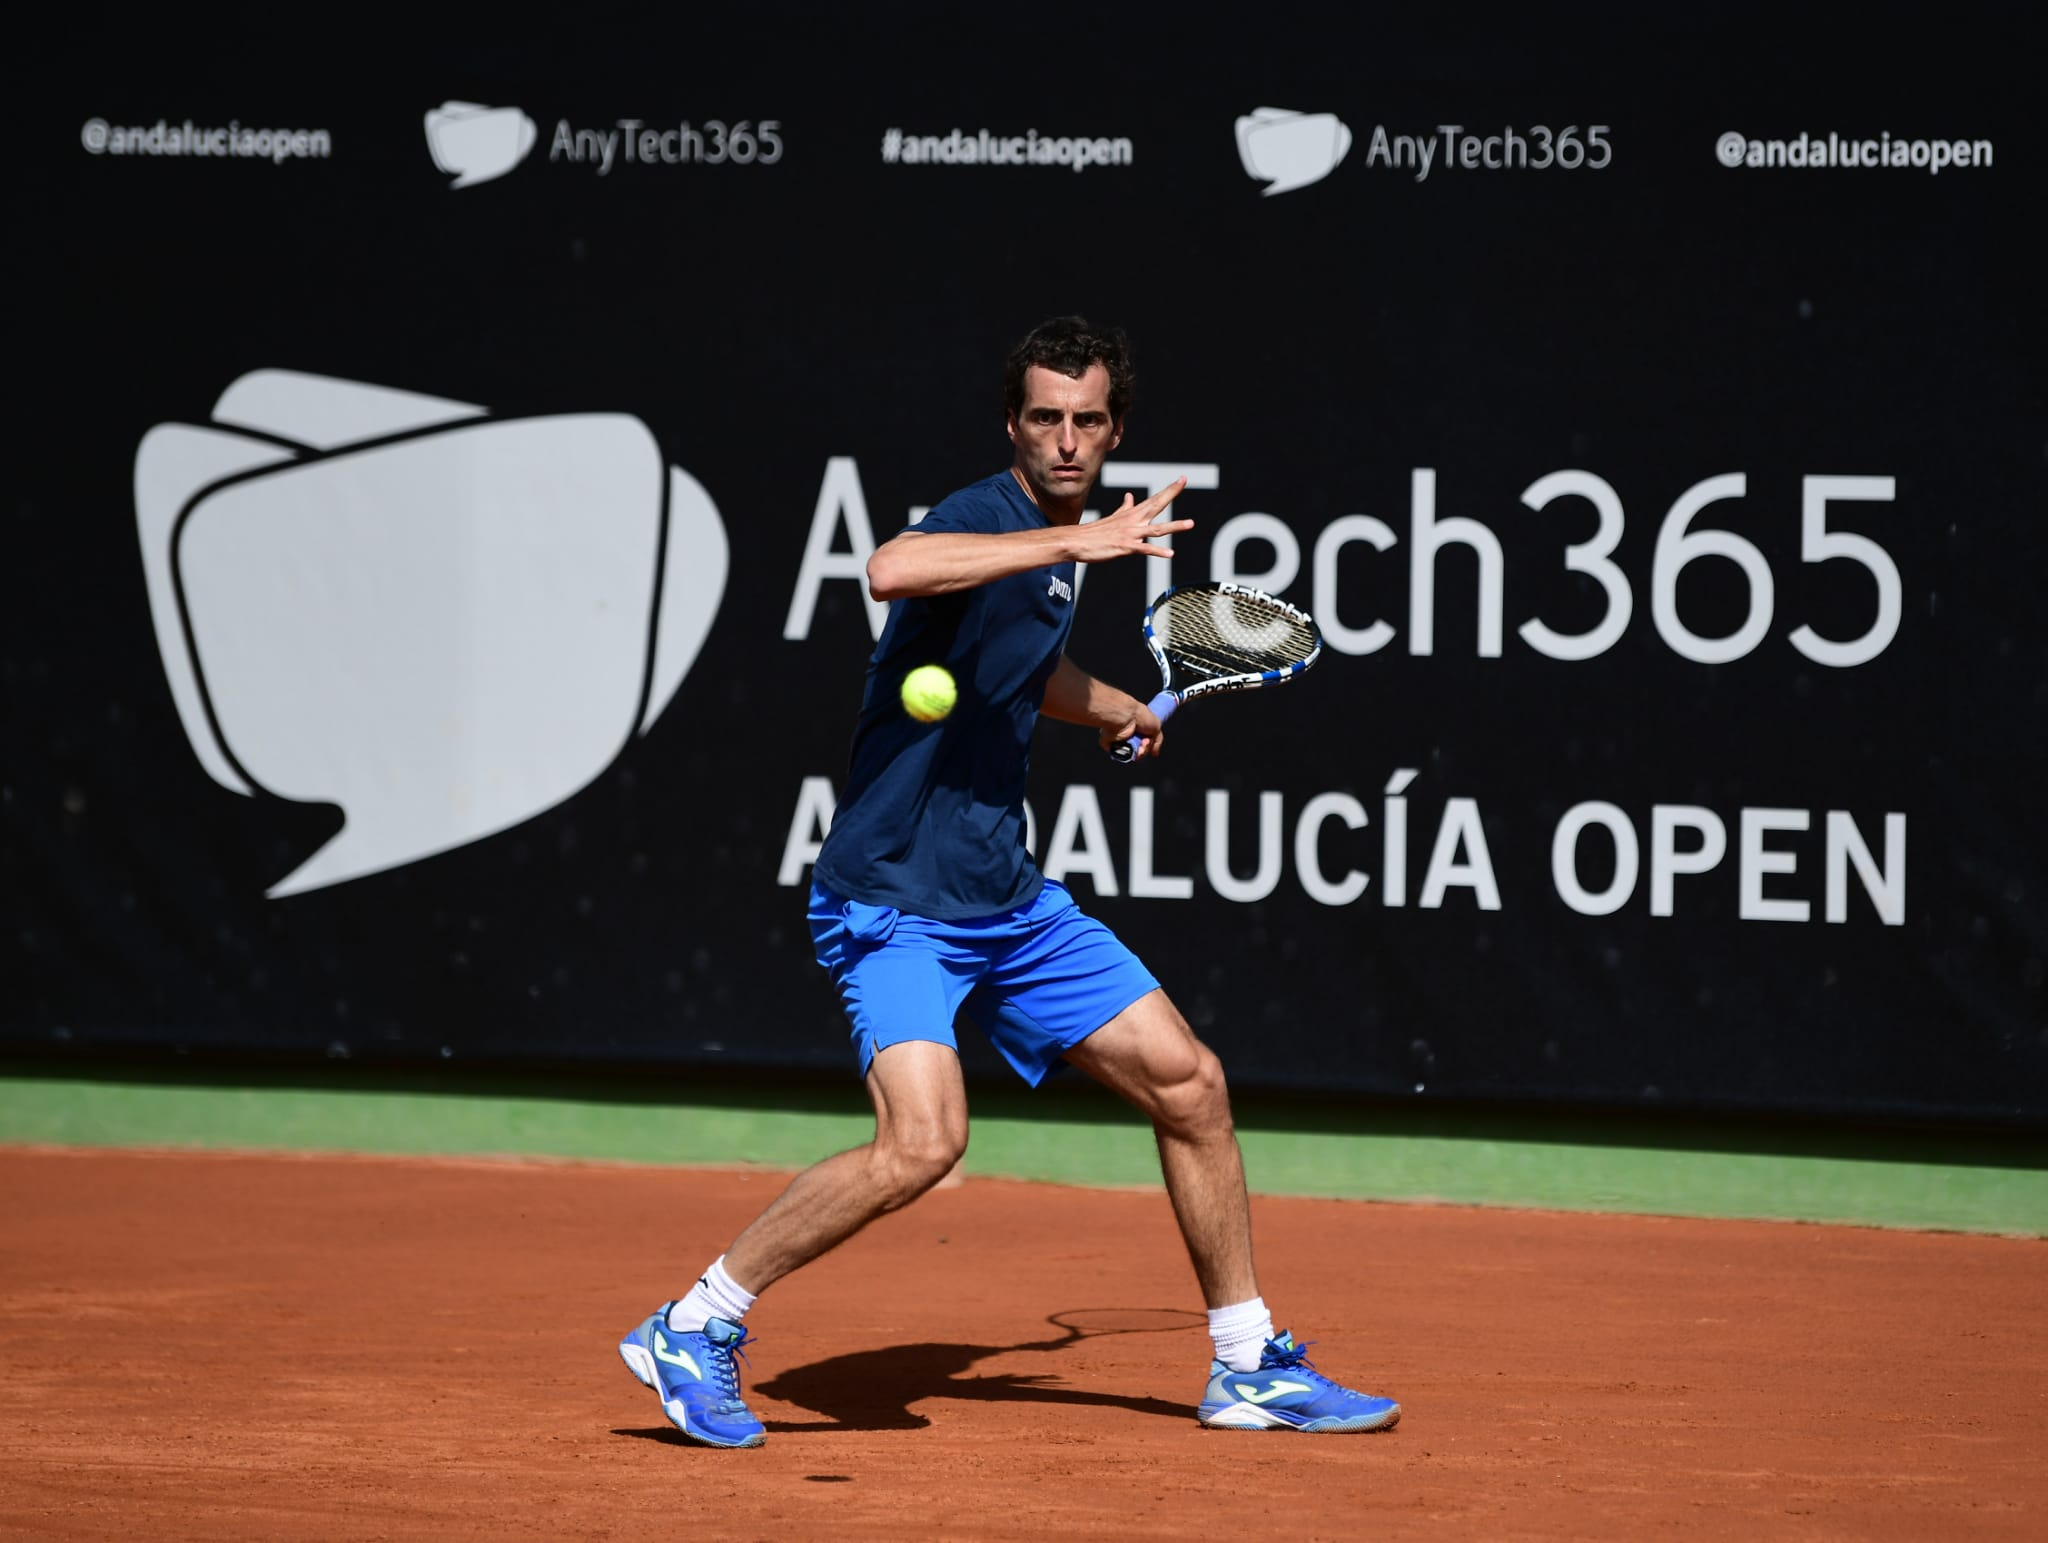 AnyTech365 Andalucia Open 2021